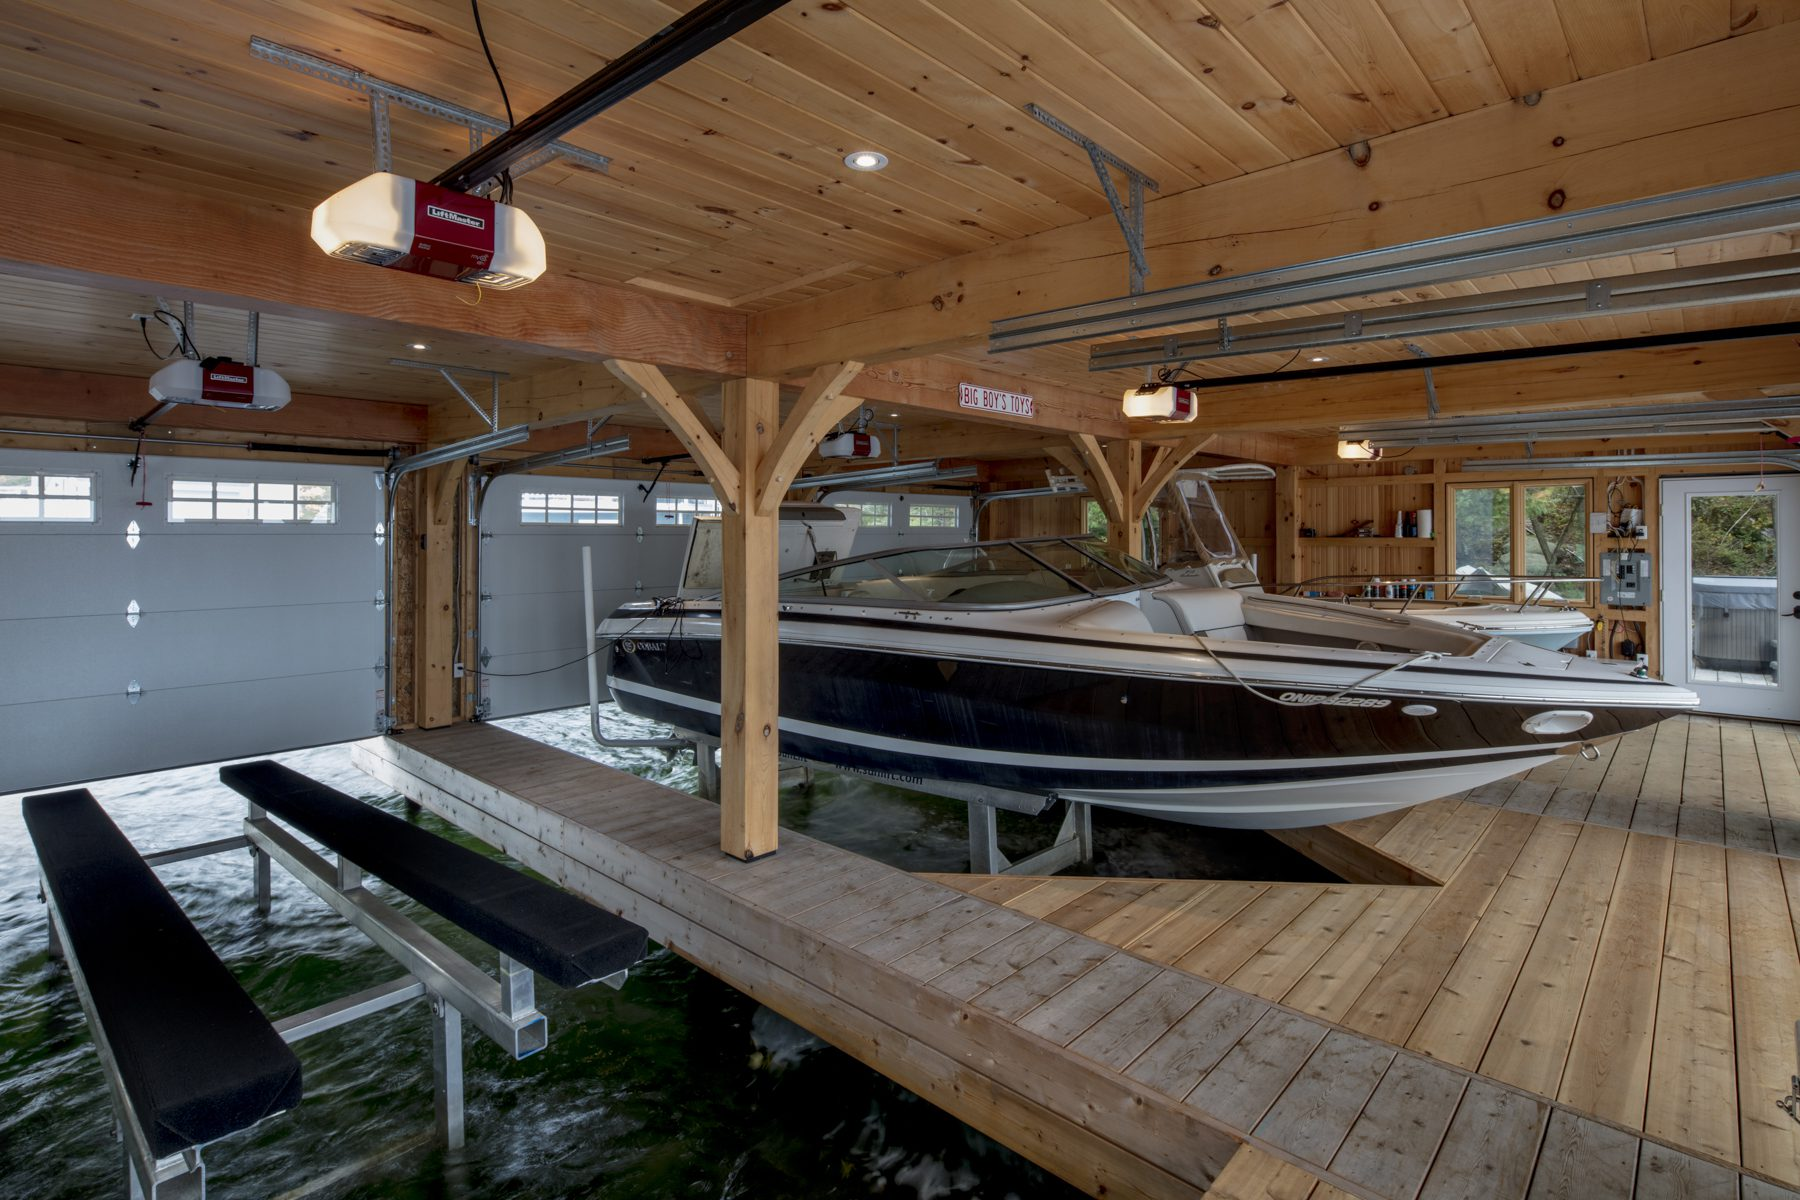 Normerica Timber Frame, Exterior, Cottage, Boathouse, Boat Slips